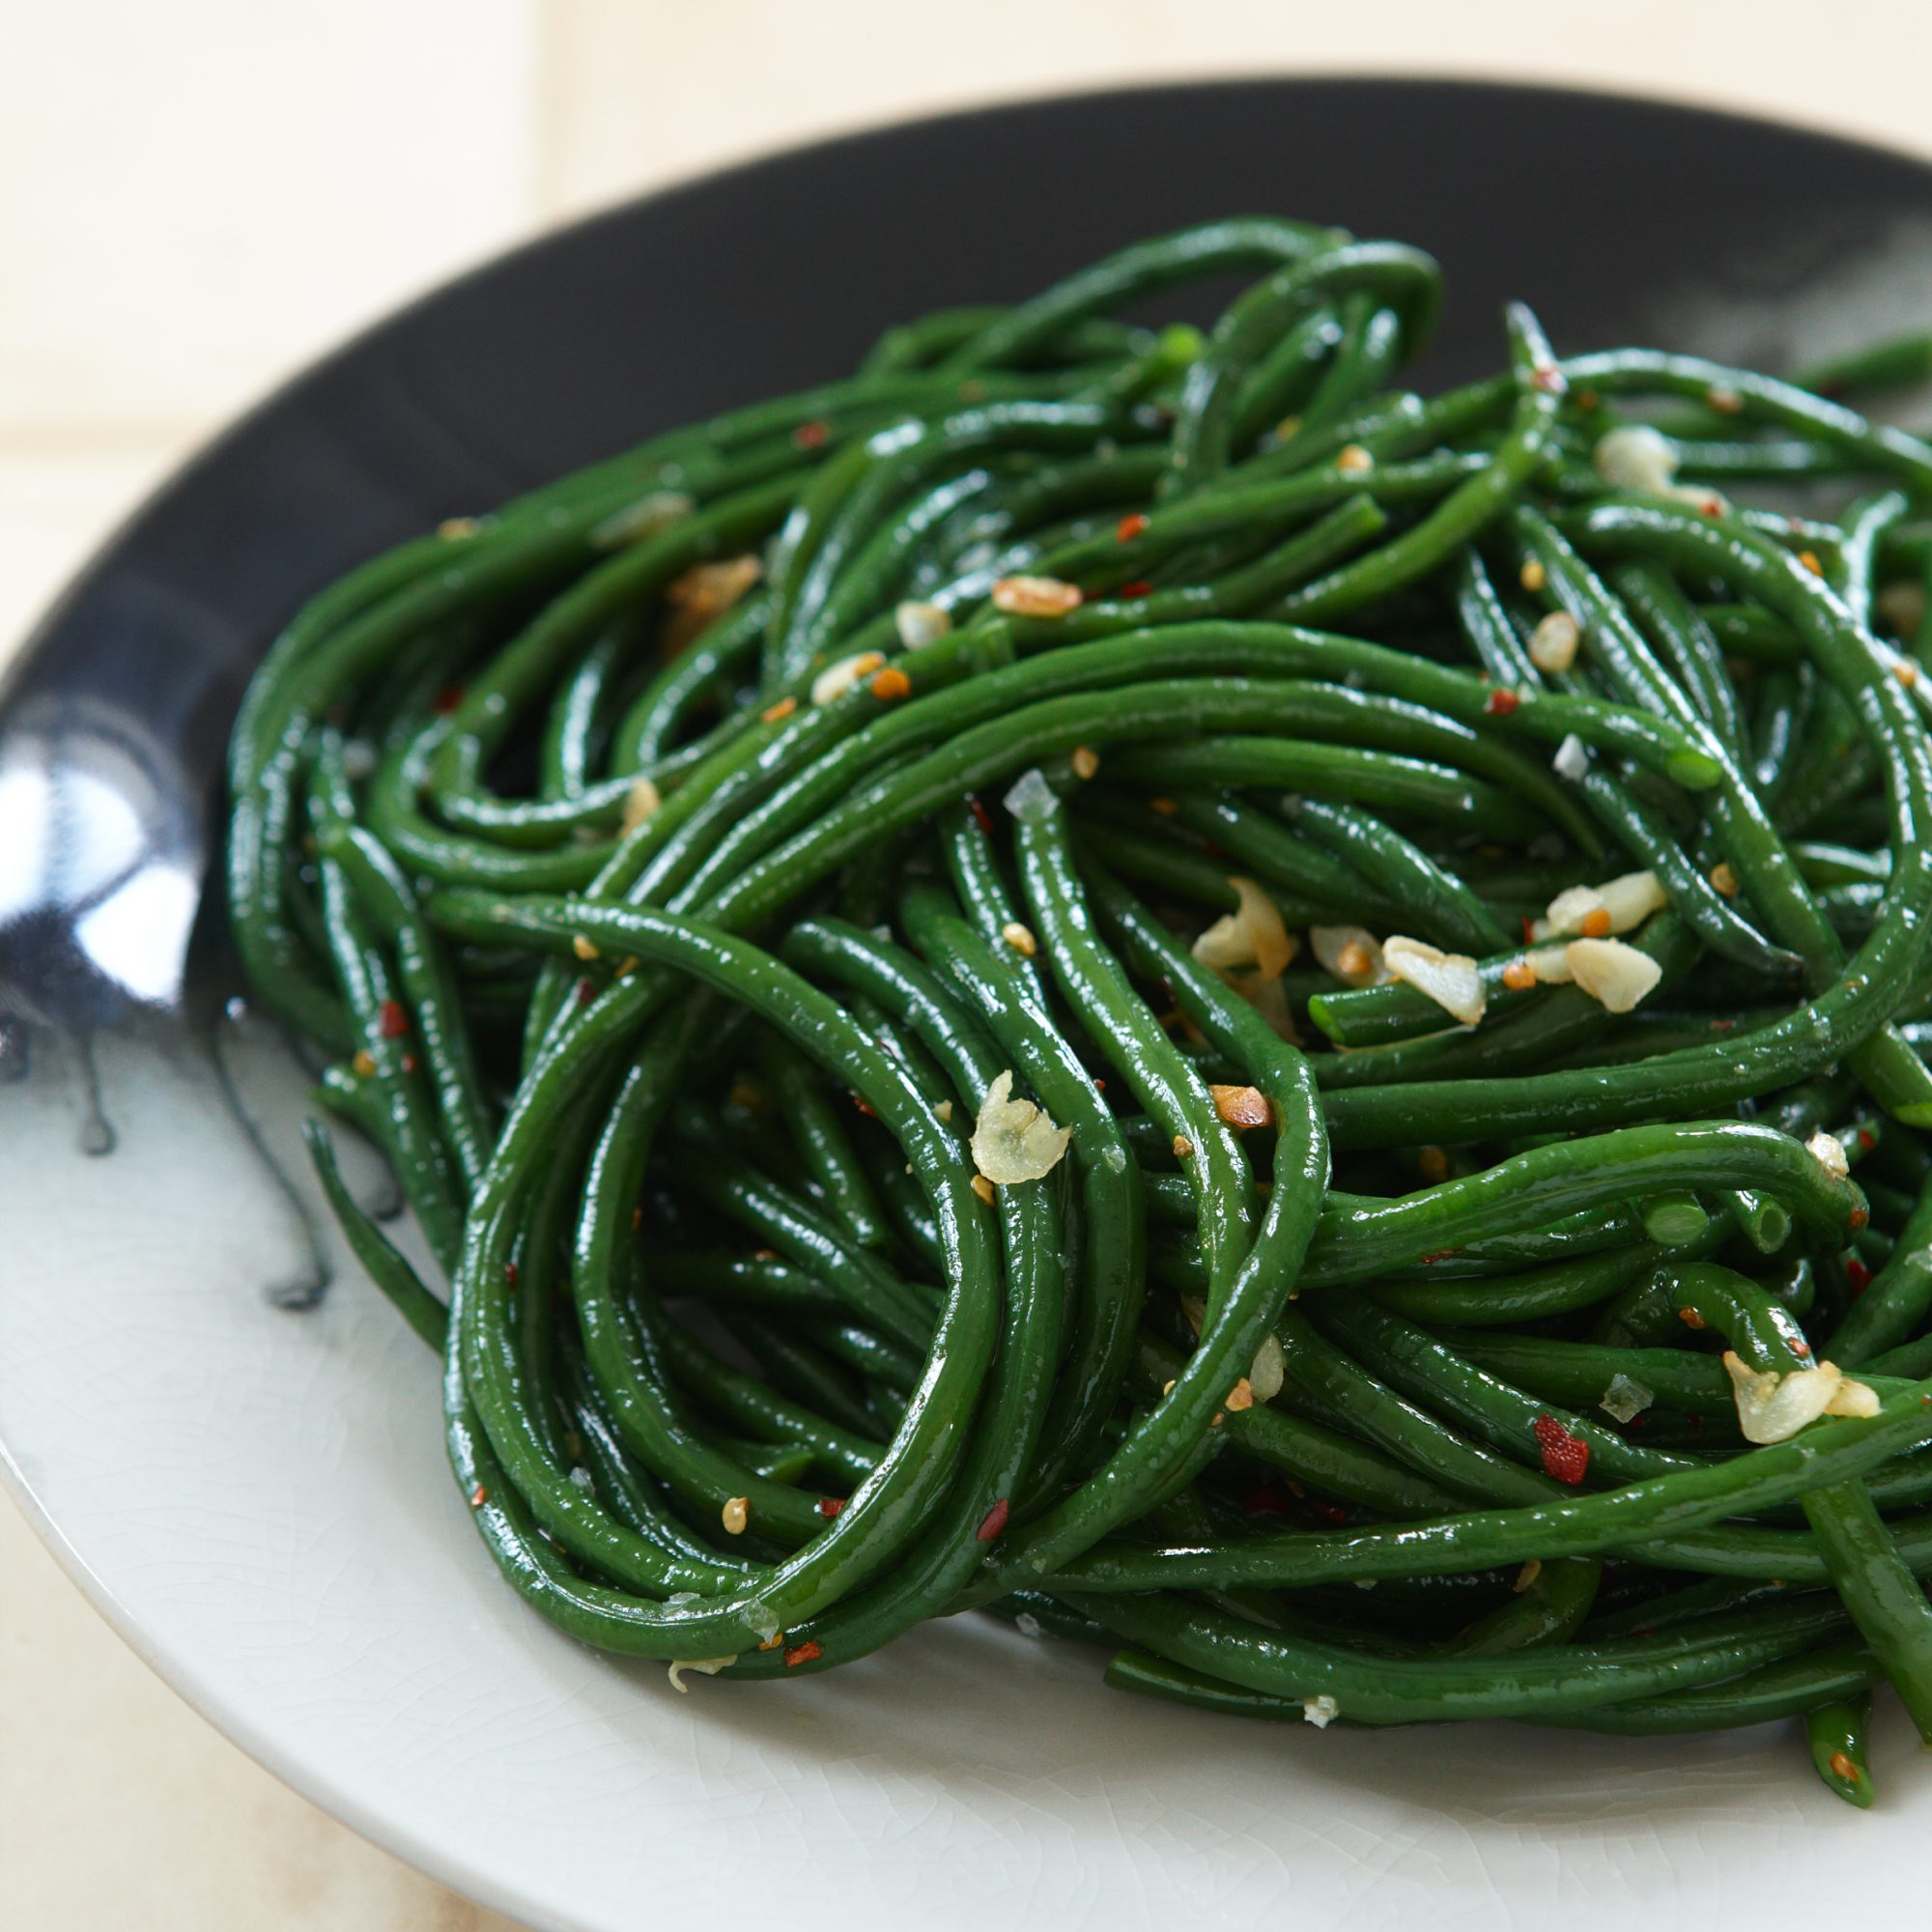 201012-r-gingered-green-beans2.jpg